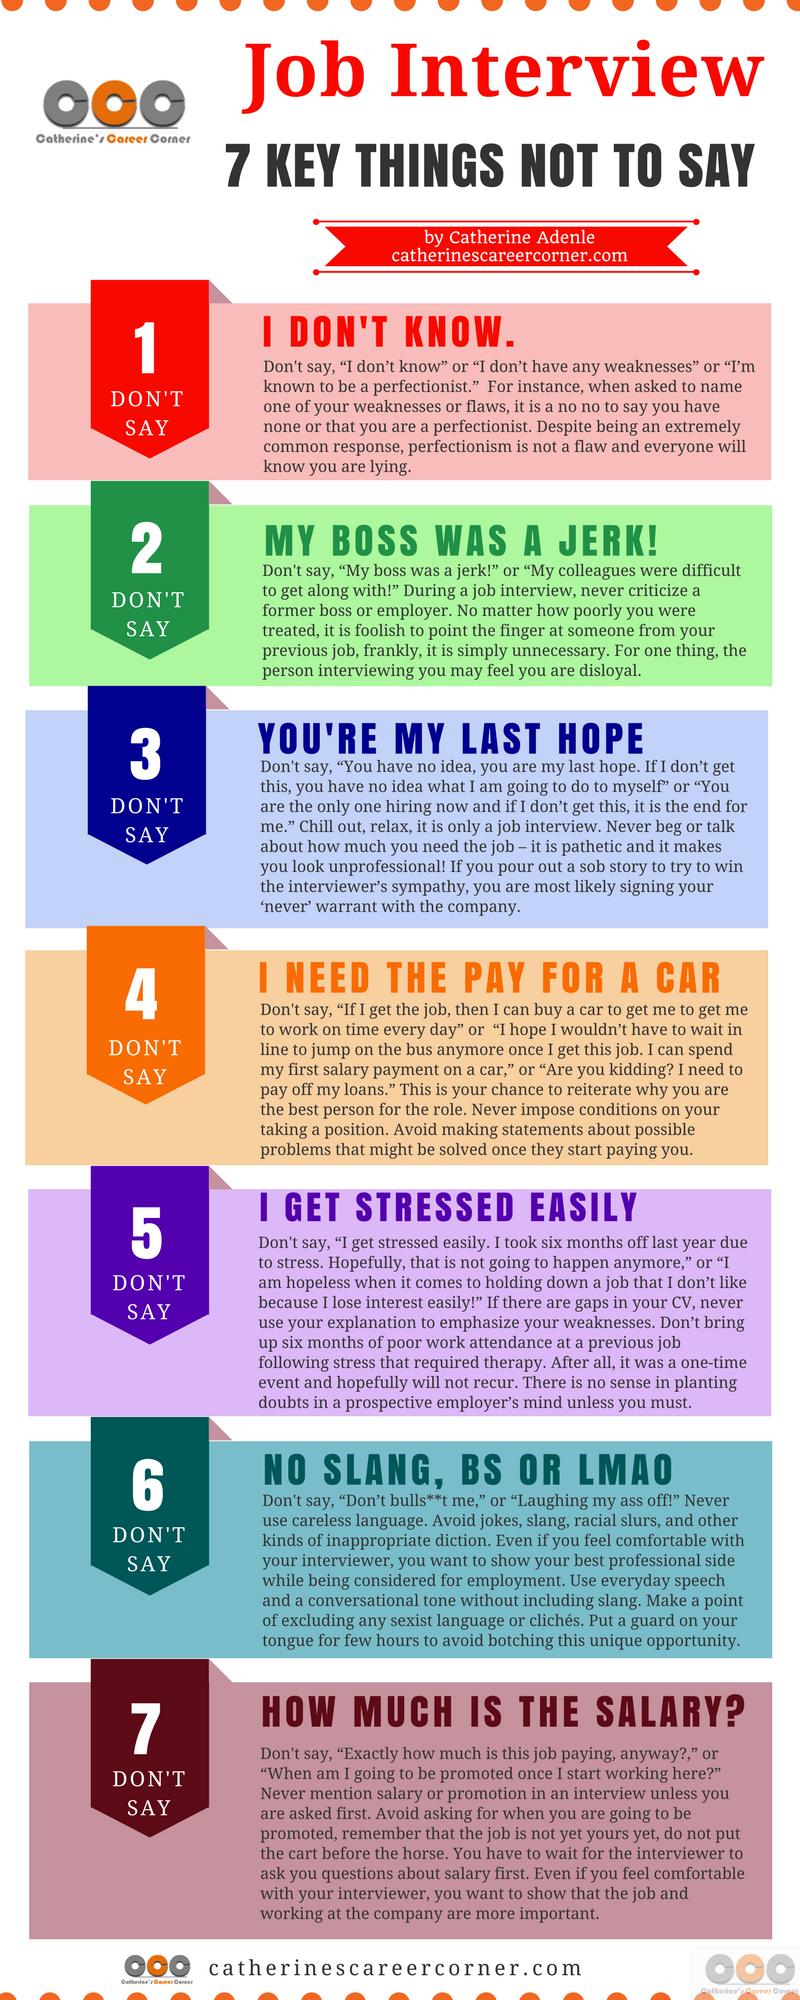 Job Interview: 7 Key Things Not to Say_Infographic